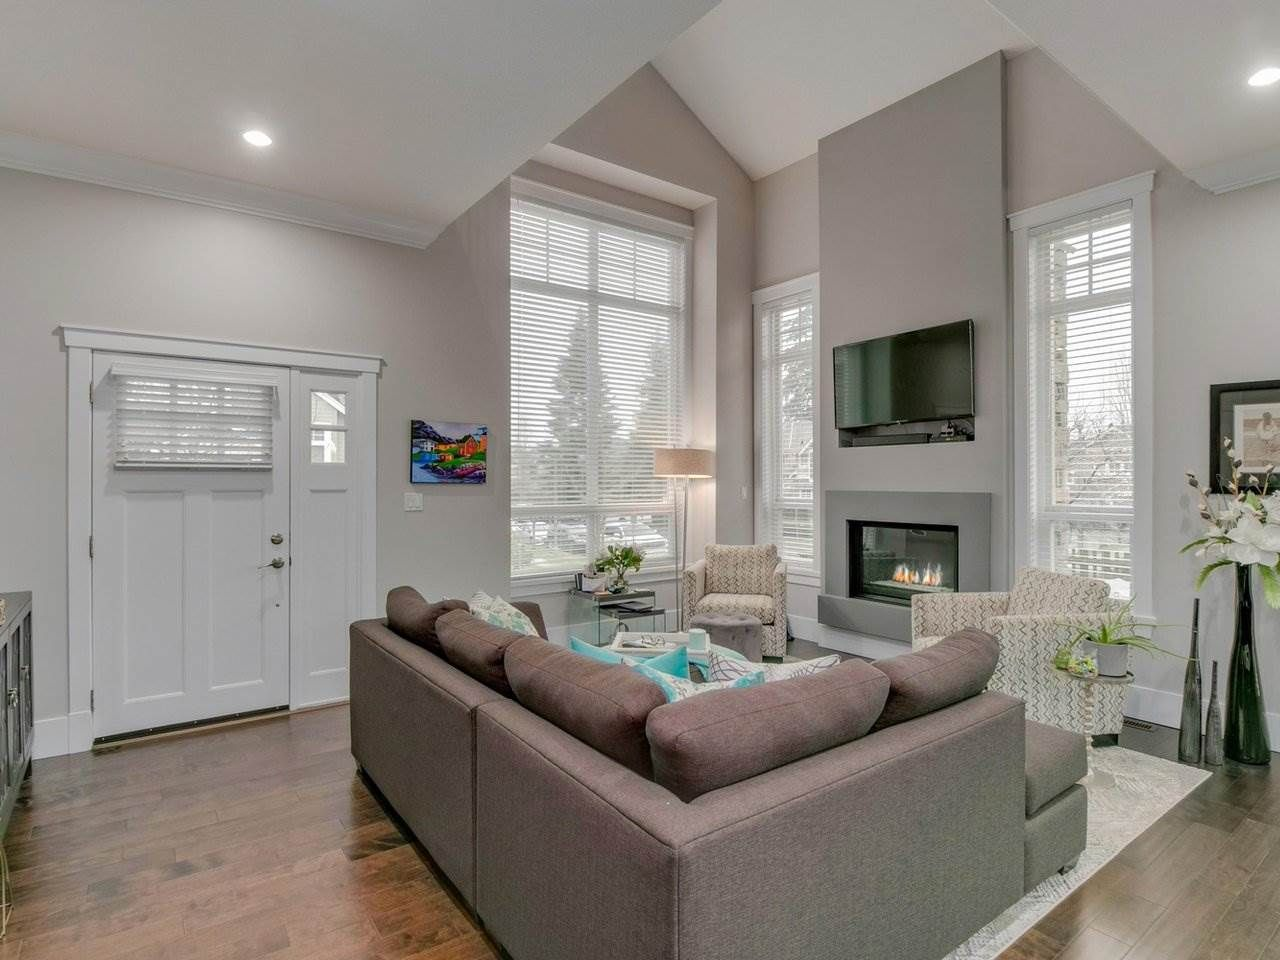 """Photo 5: Photos: 15 2456 163 Street in Surrey: Grandview Surrey Townhouse for sale in """"Azure East"""" (South Surrey White Rock)  : MLS®# R2535860"""